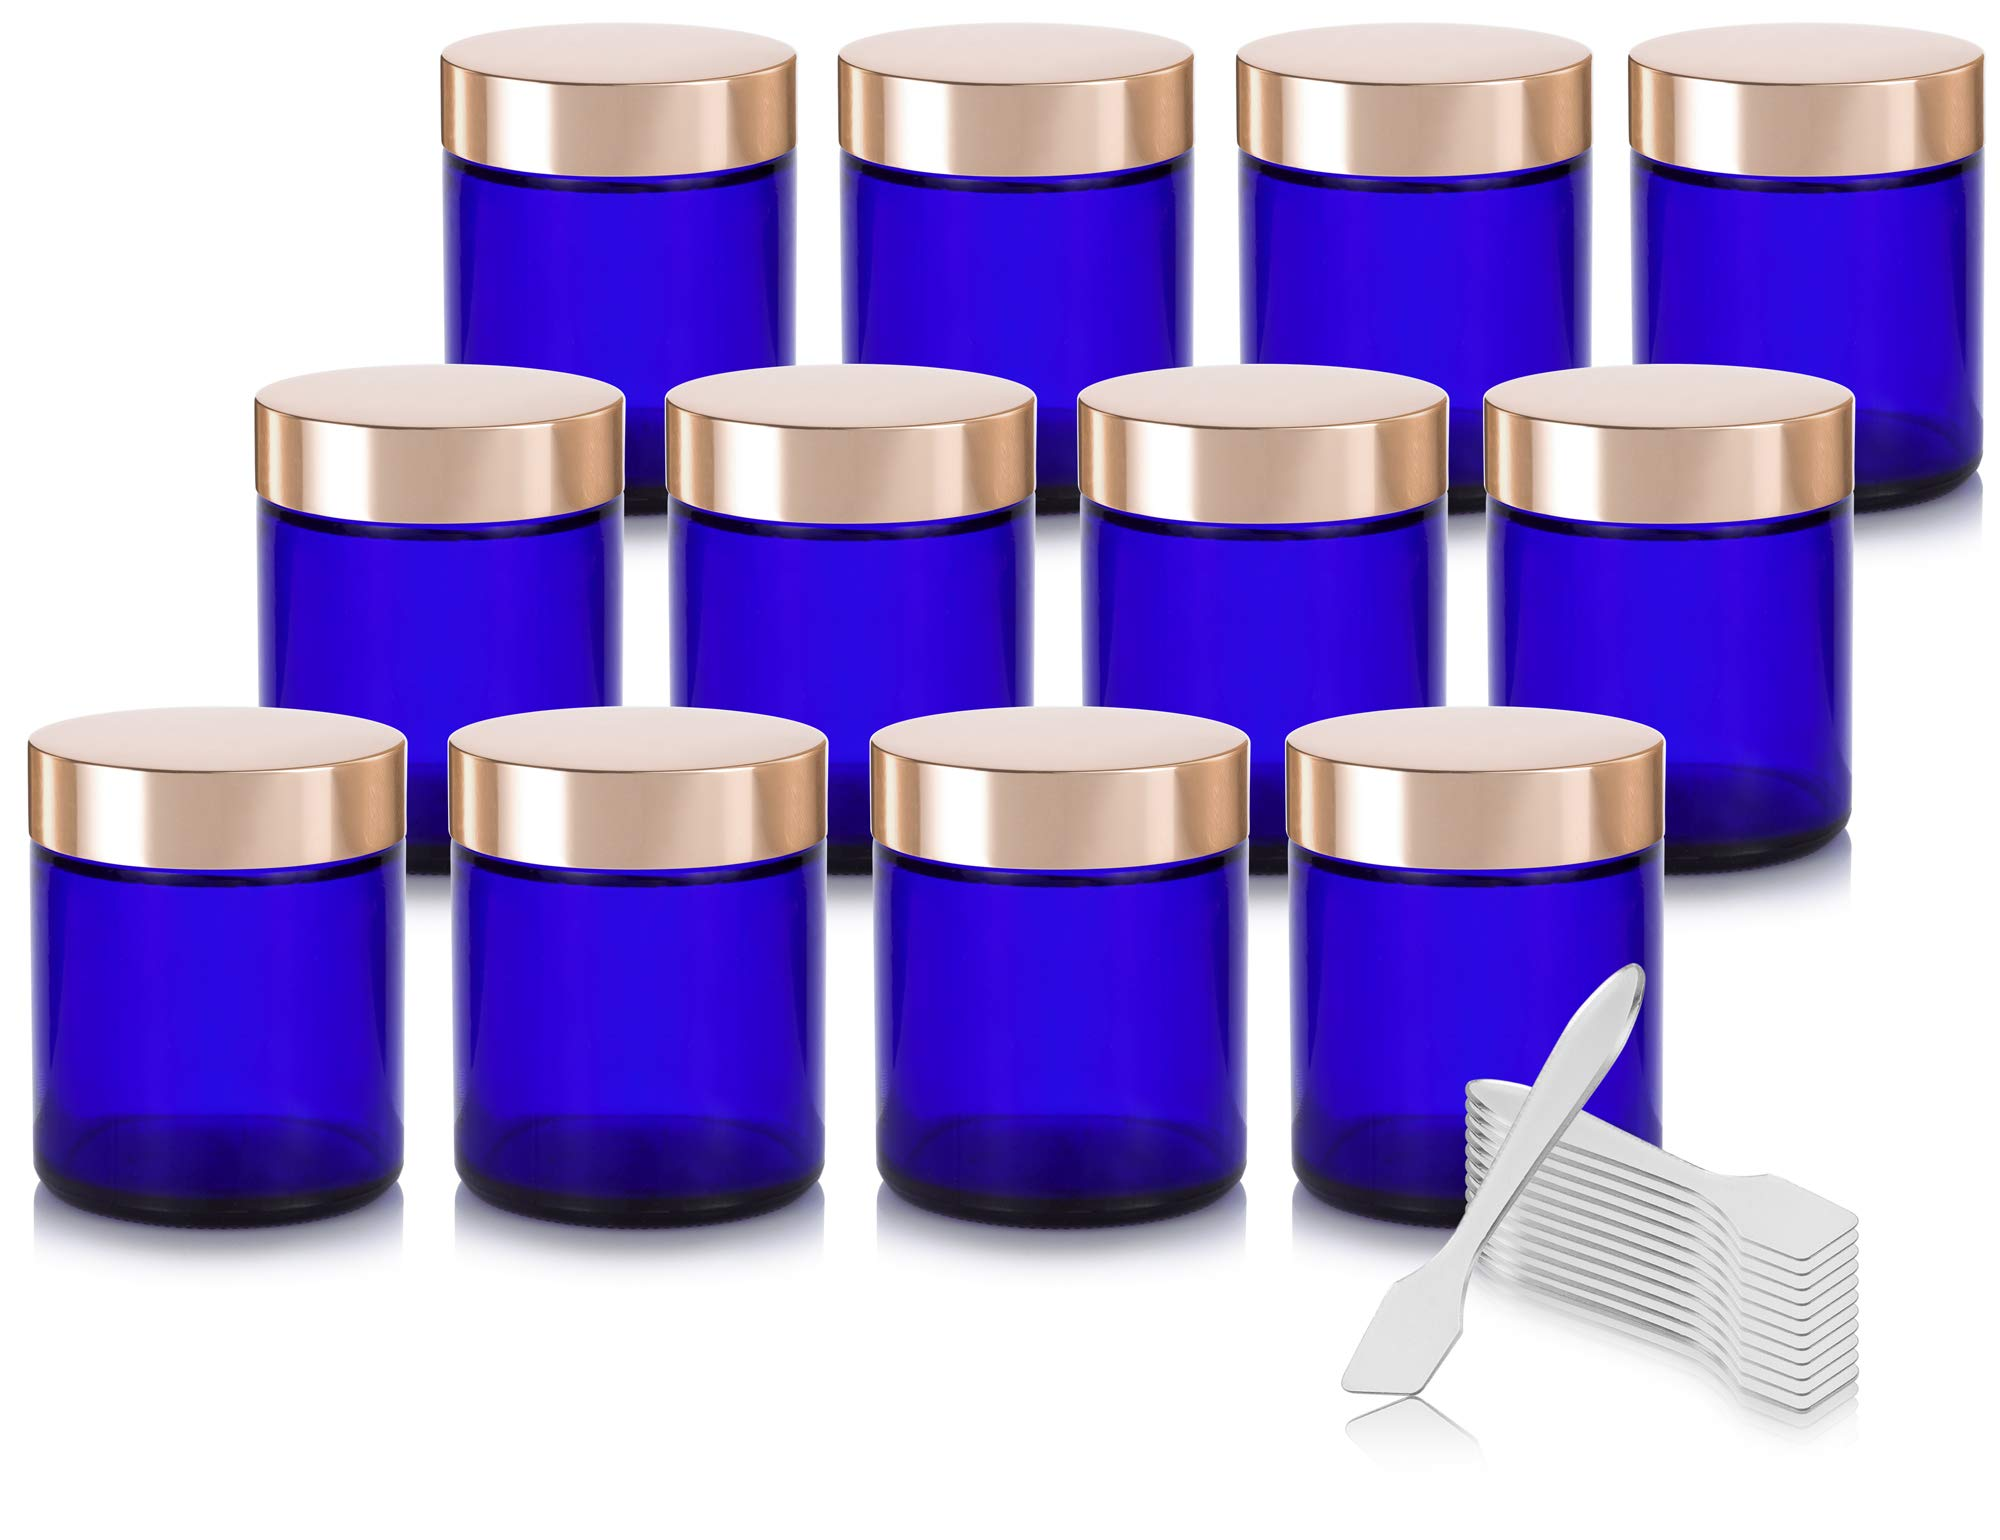 Cobalt Blue Thick Glass Straight Sided Jar with Gold Metal Overshell Lid - 4 oz / 120 ml (12 pack) + Spatulas by JUVITUS